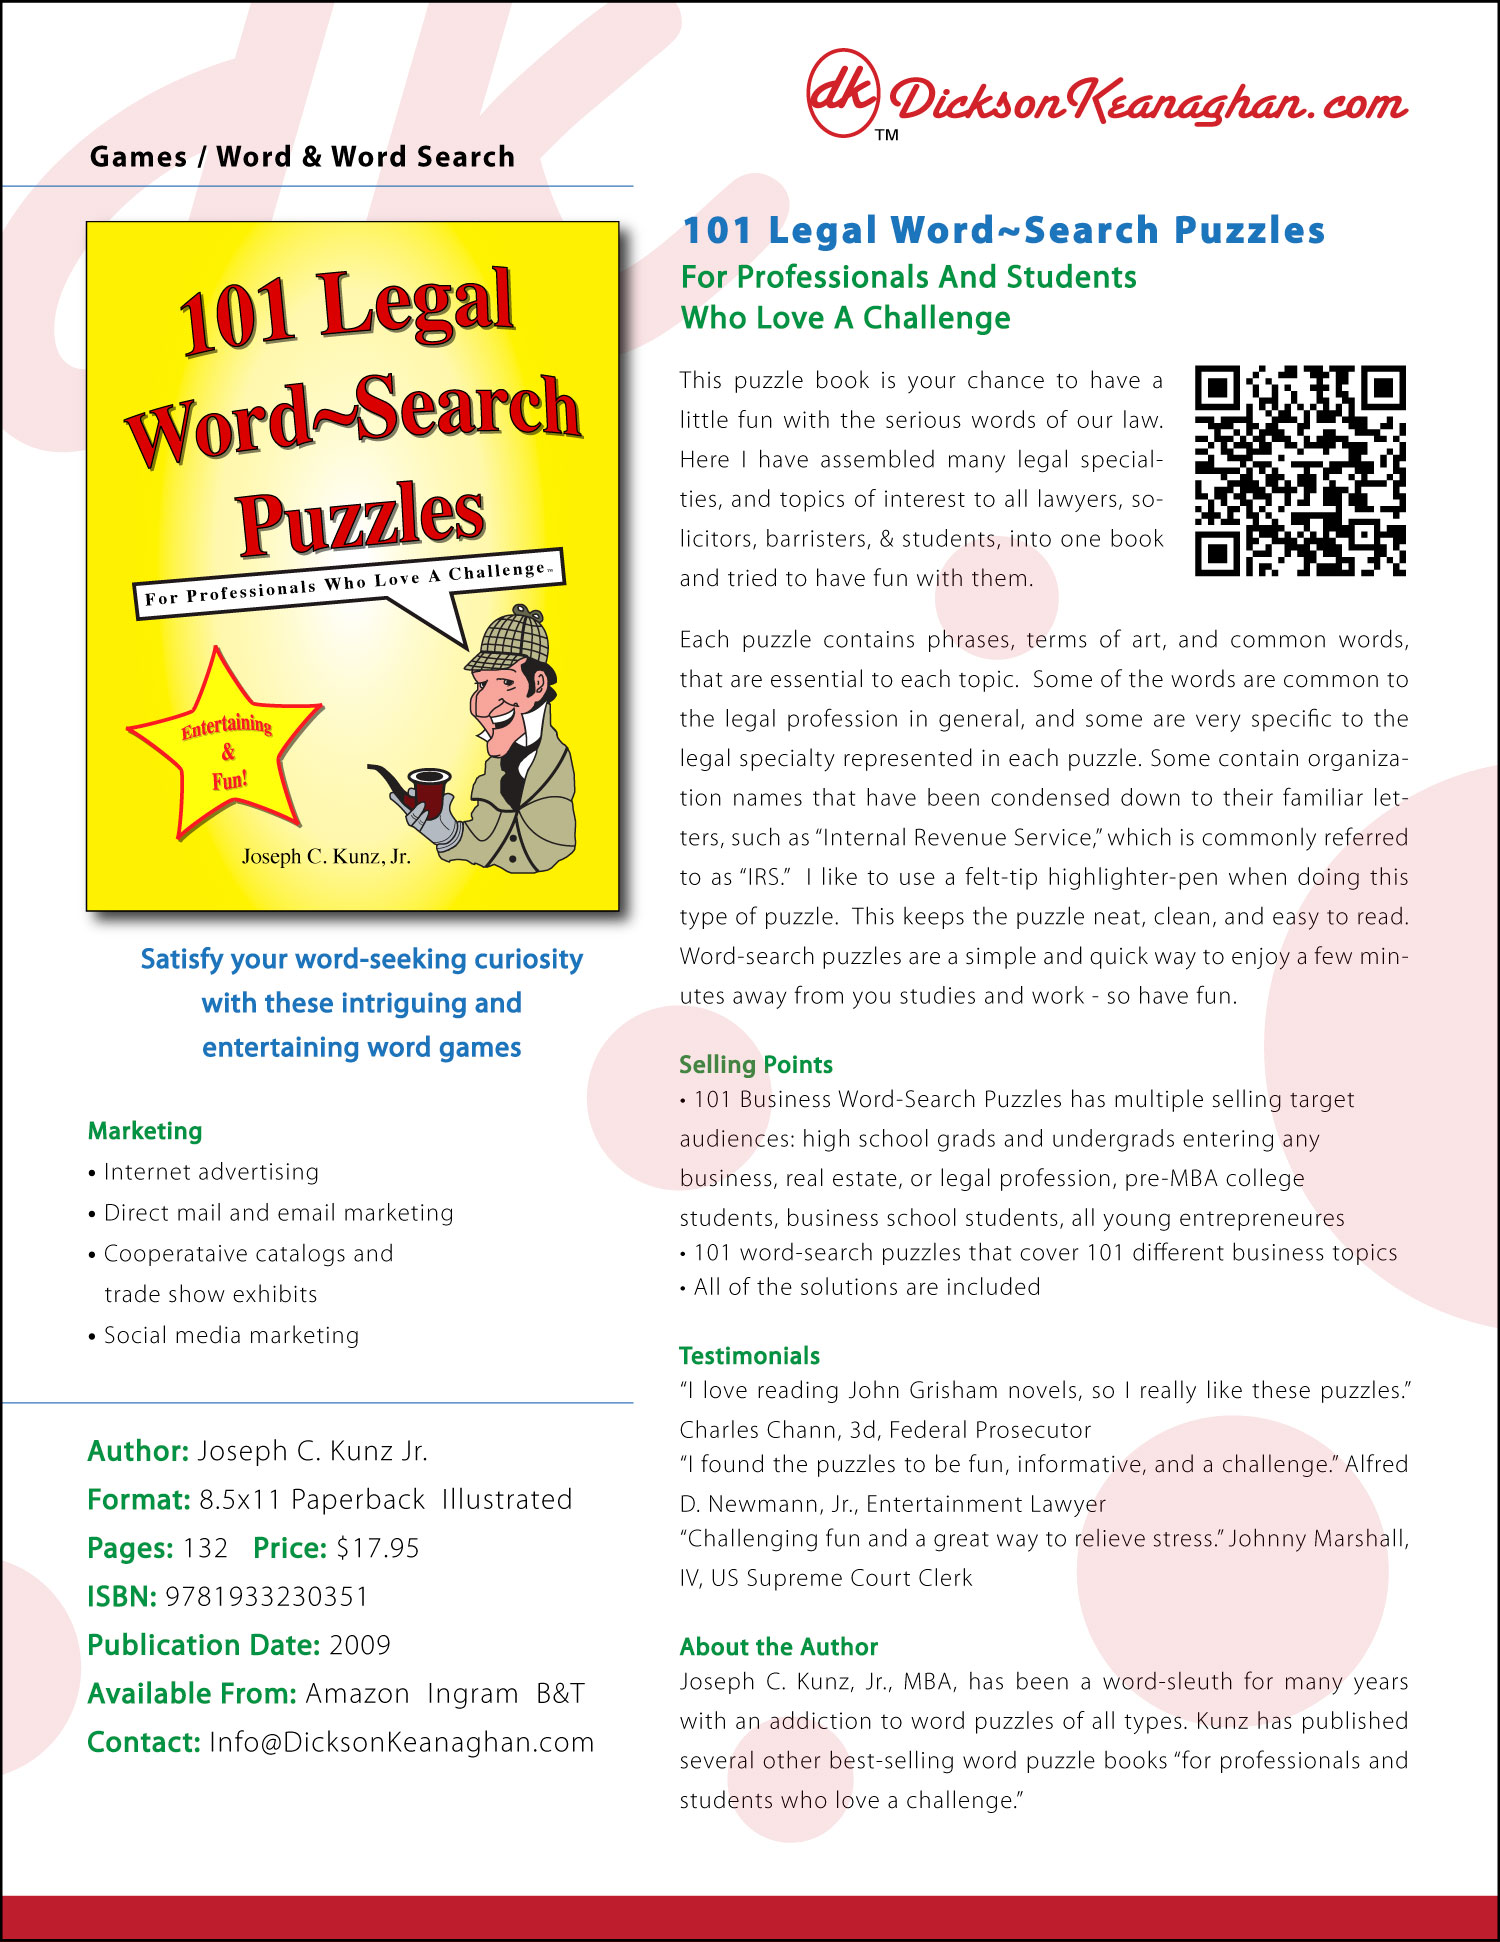 Sell Sheet for 101 Legal Word-Search Puzzles, by Joseph C. Kunz, Jr.